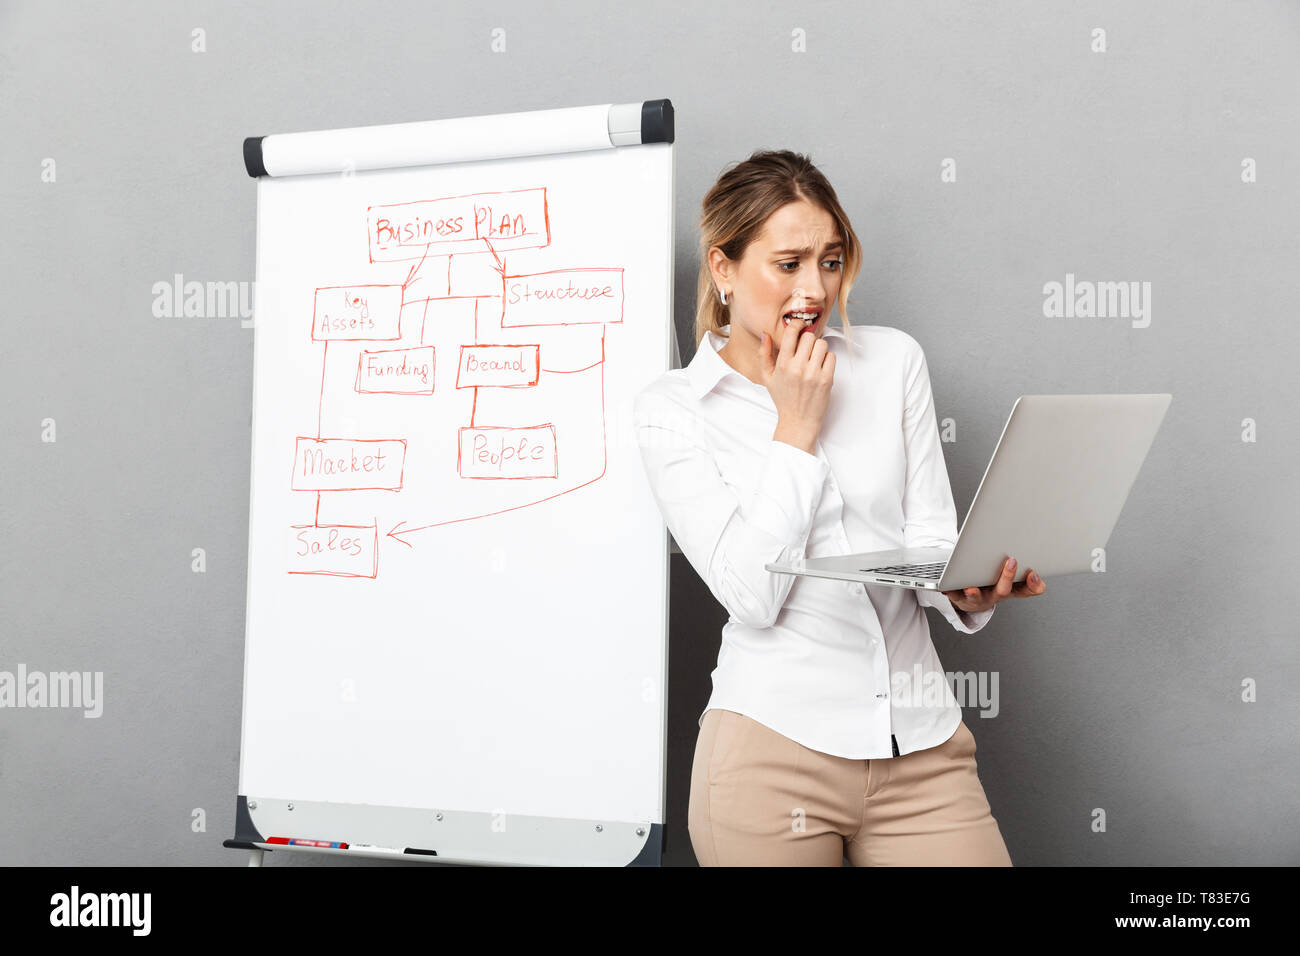 Image of caucasian businesswoman in formal wear using flipchart and laptop while making presentation in the office isolated over gray background - Stock Image